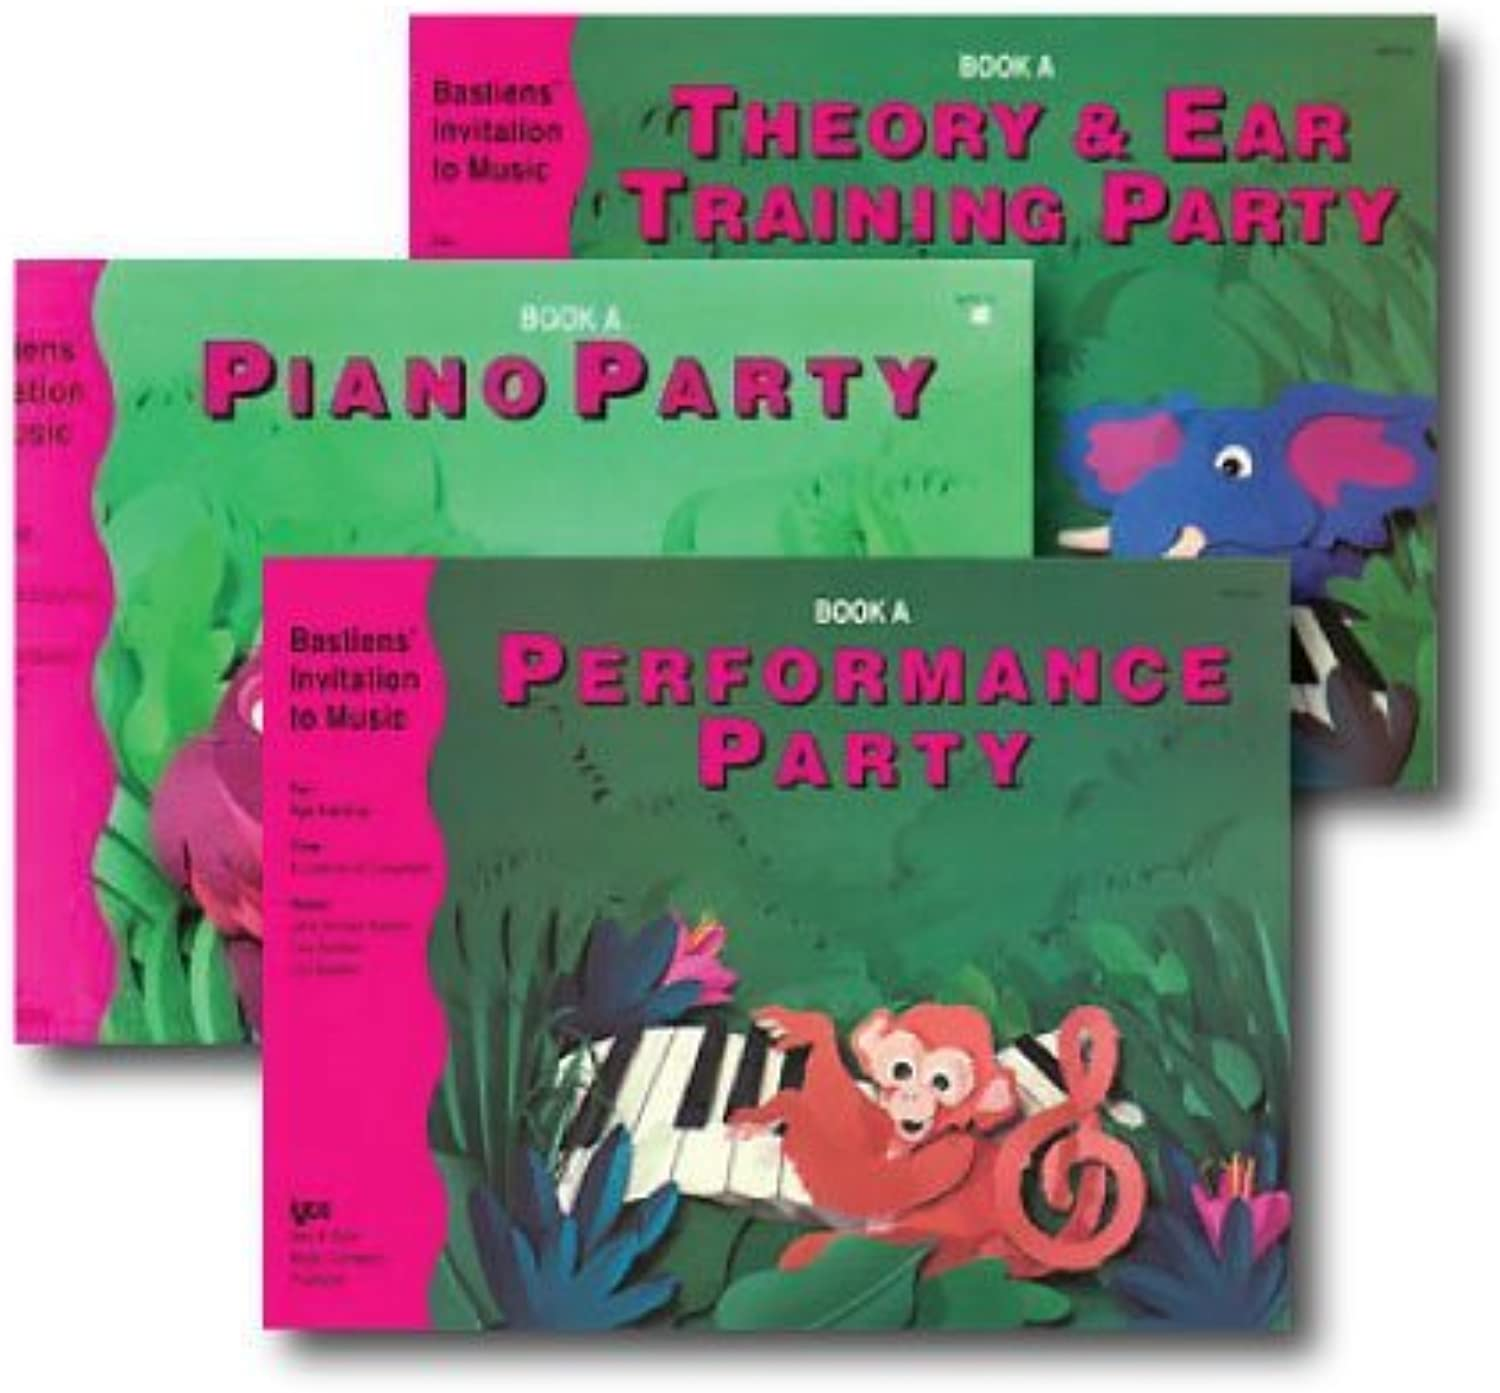 Bastiens' Invitation to Music - 3 Book Set - Includes Piano Party Book A, Performance Party Book A, and Theory & Ear Training Party Book A by Bastiens' Invitation to Music